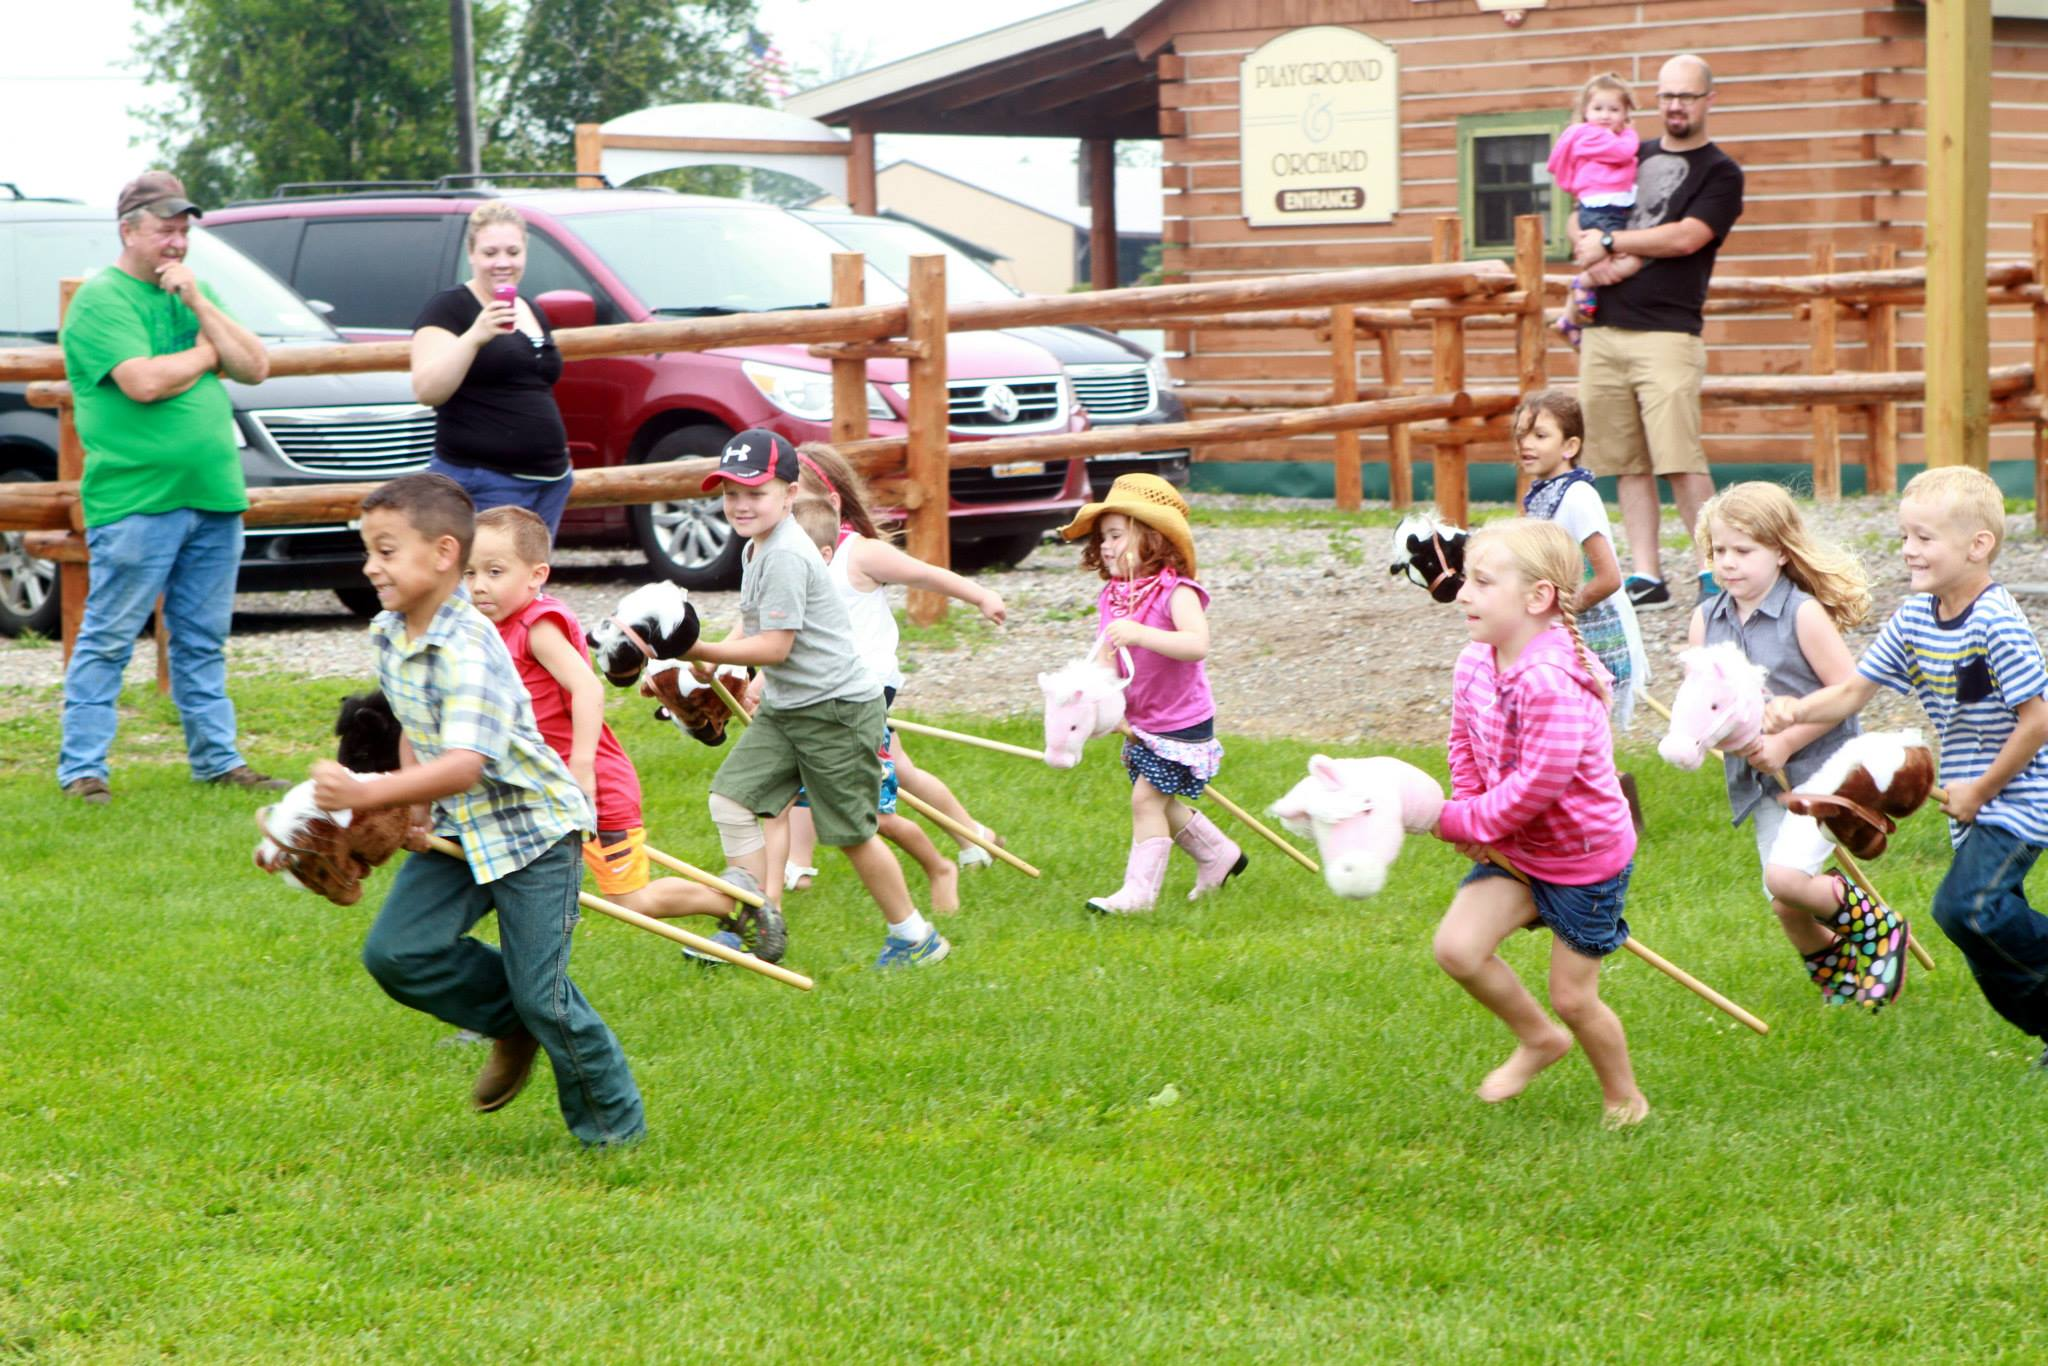 Group of children racing